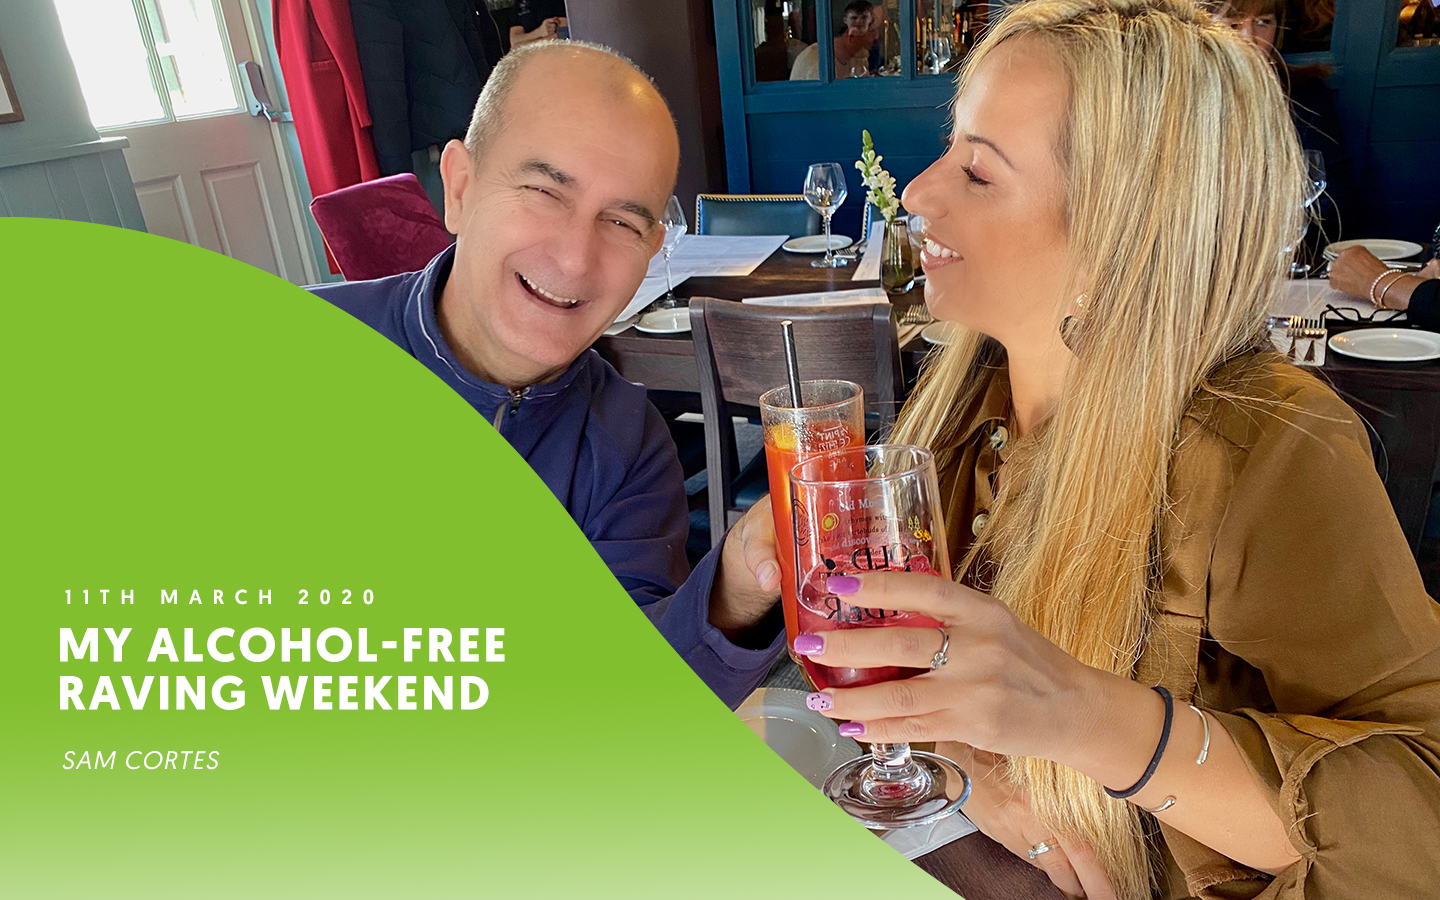 My alcohol-free raving weekend – by Sam Cortes